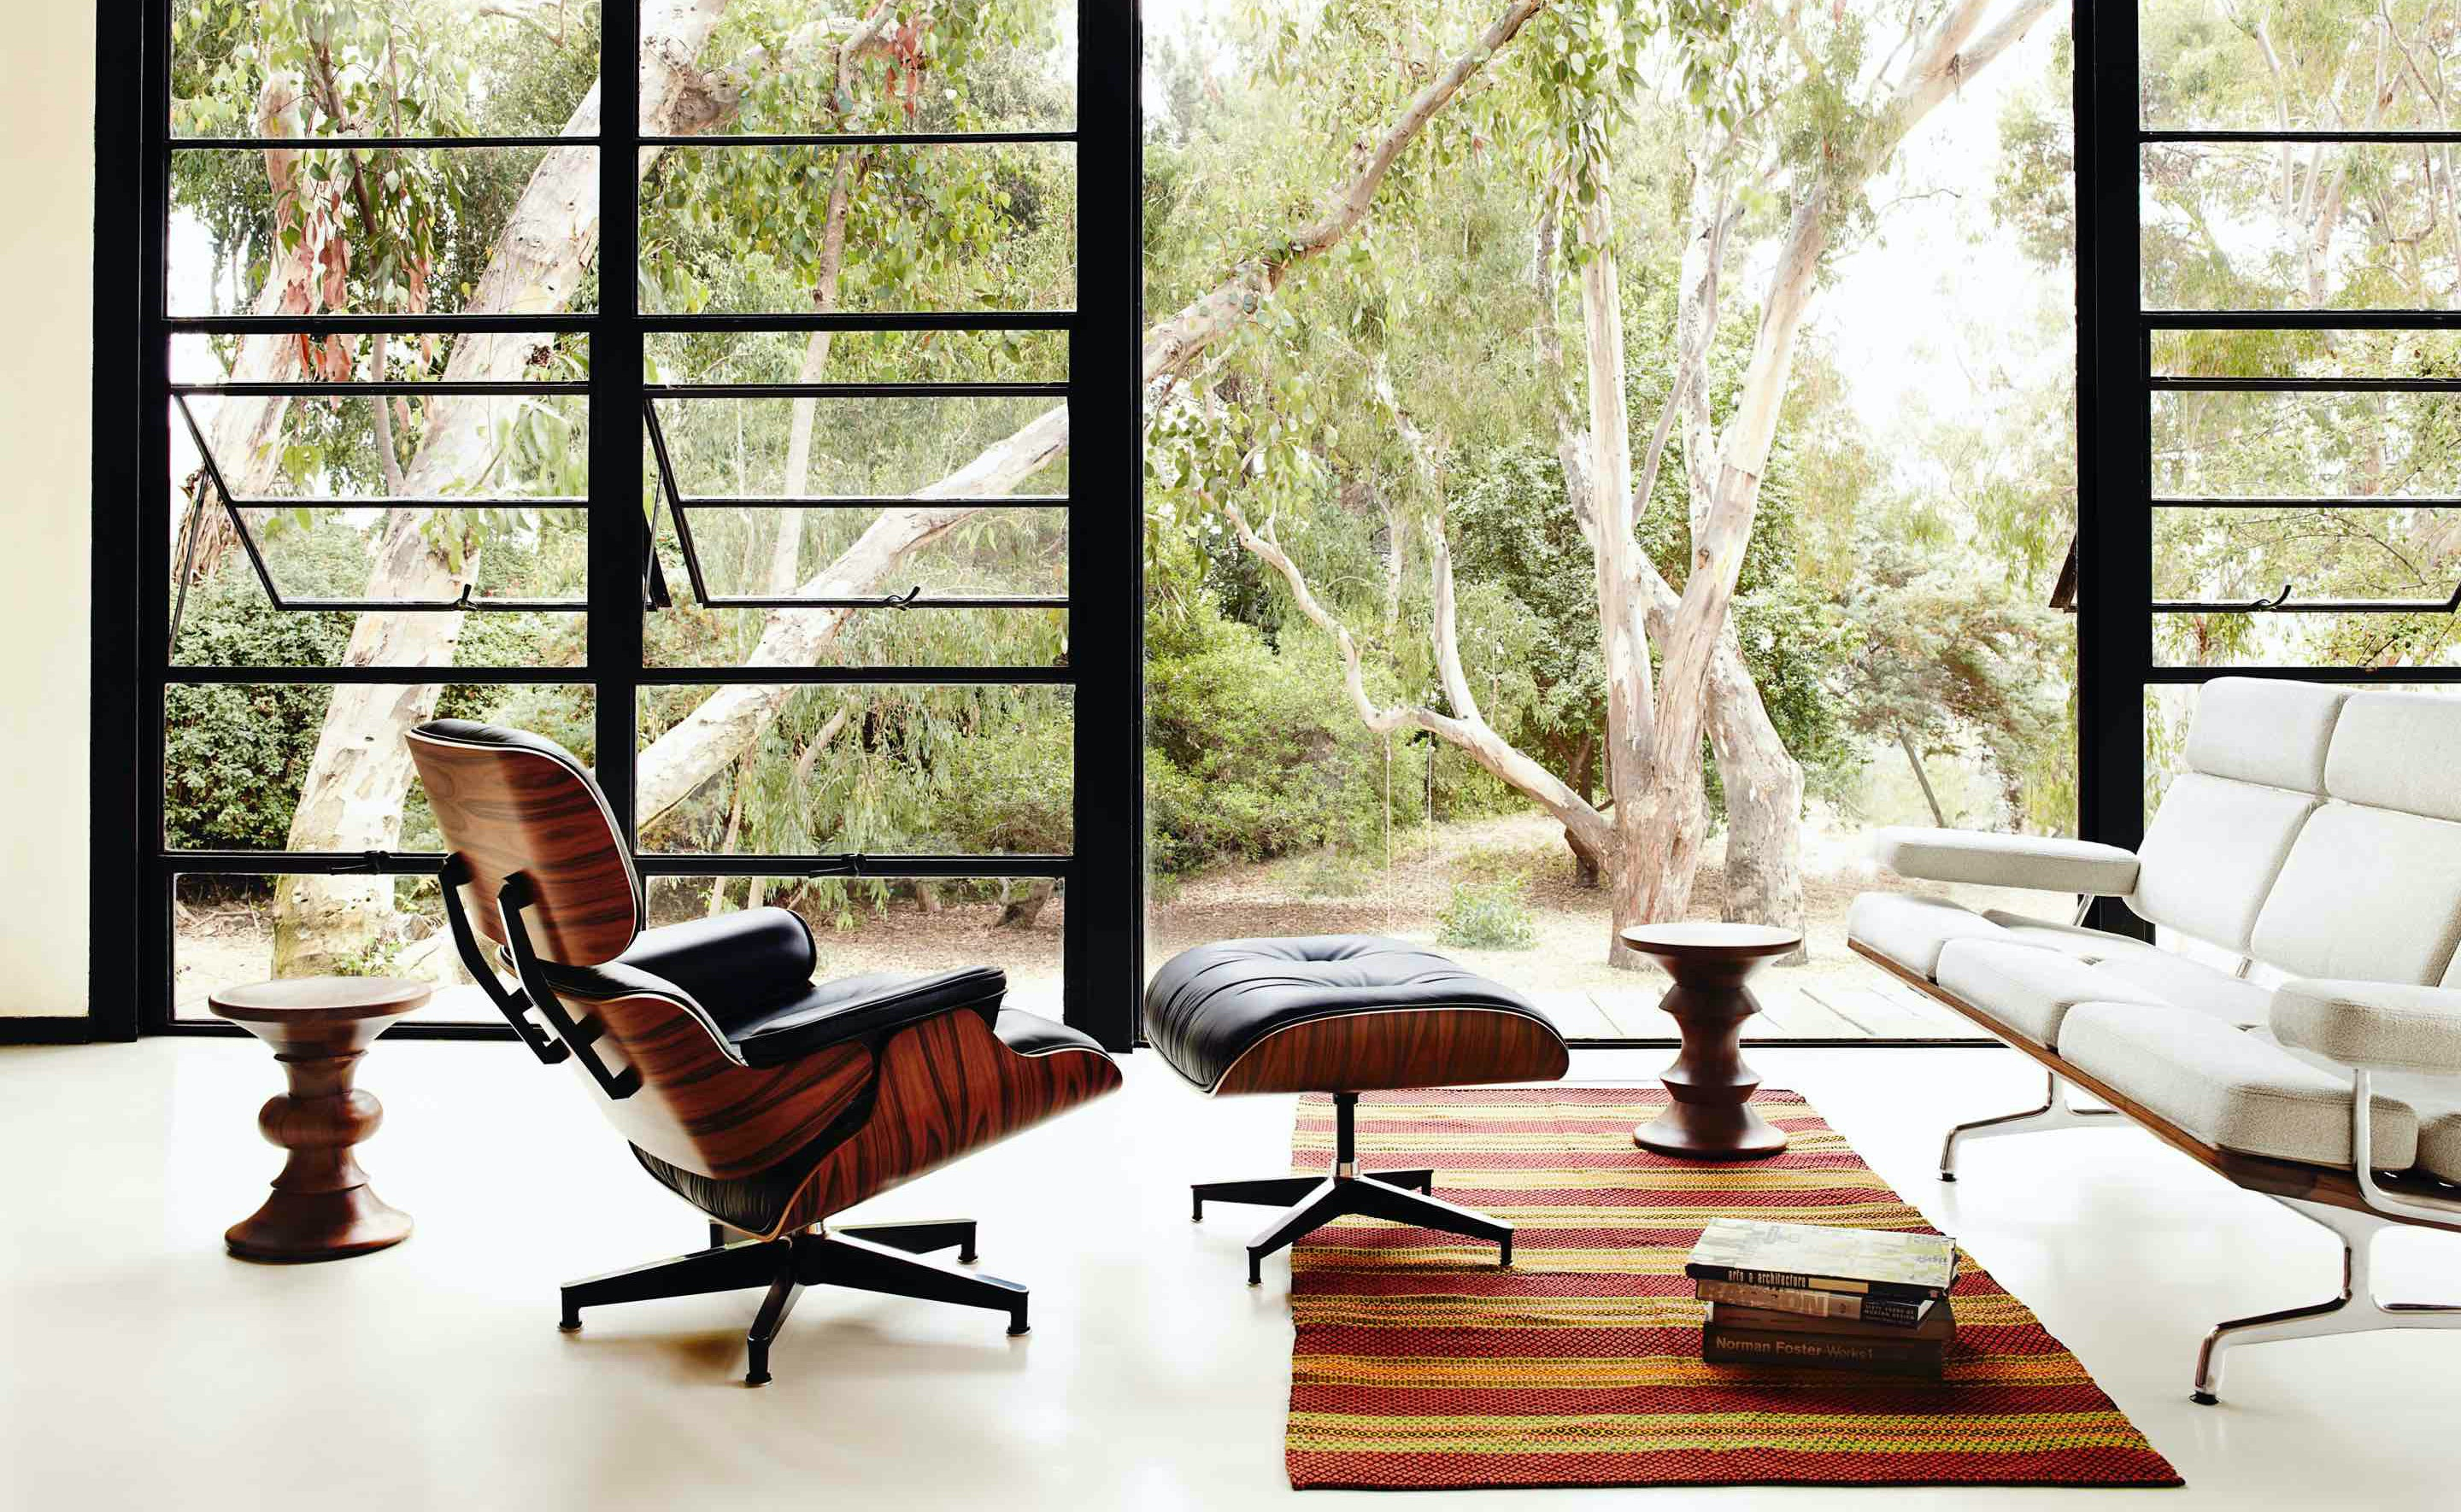 eames lounge chair for sale old chairs painted design within reach s 2018 herman miller has the most luxurious 15 percent off